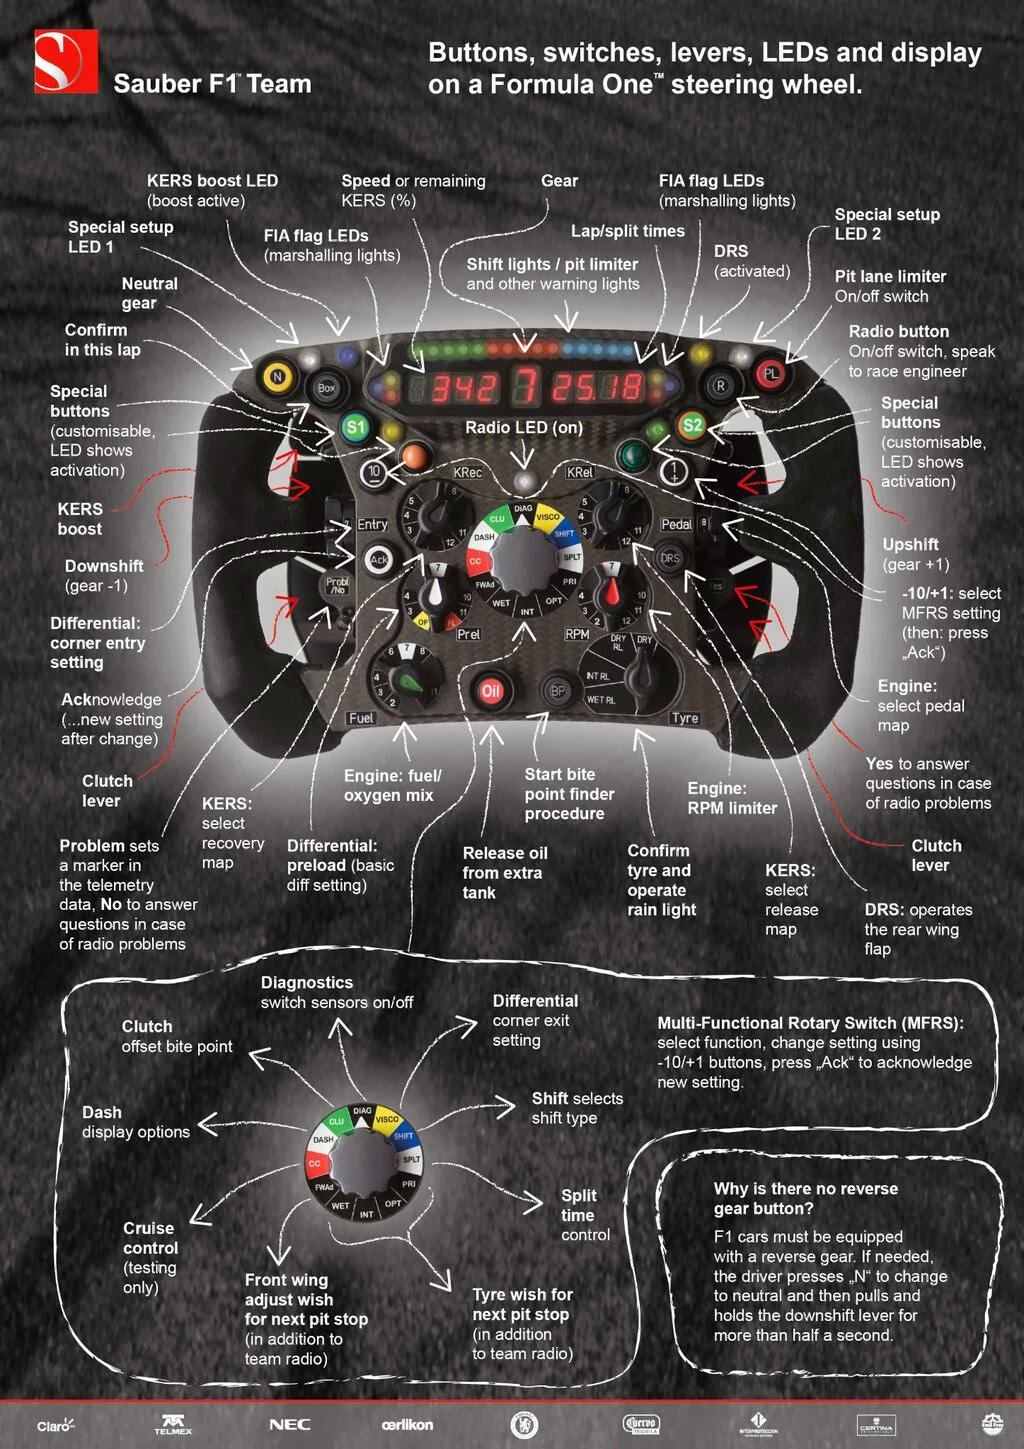 tamerlane 39 s thoughts 2013 f1 steering wheel. Black Bedroom Furniture Sets. Home Design Ideas